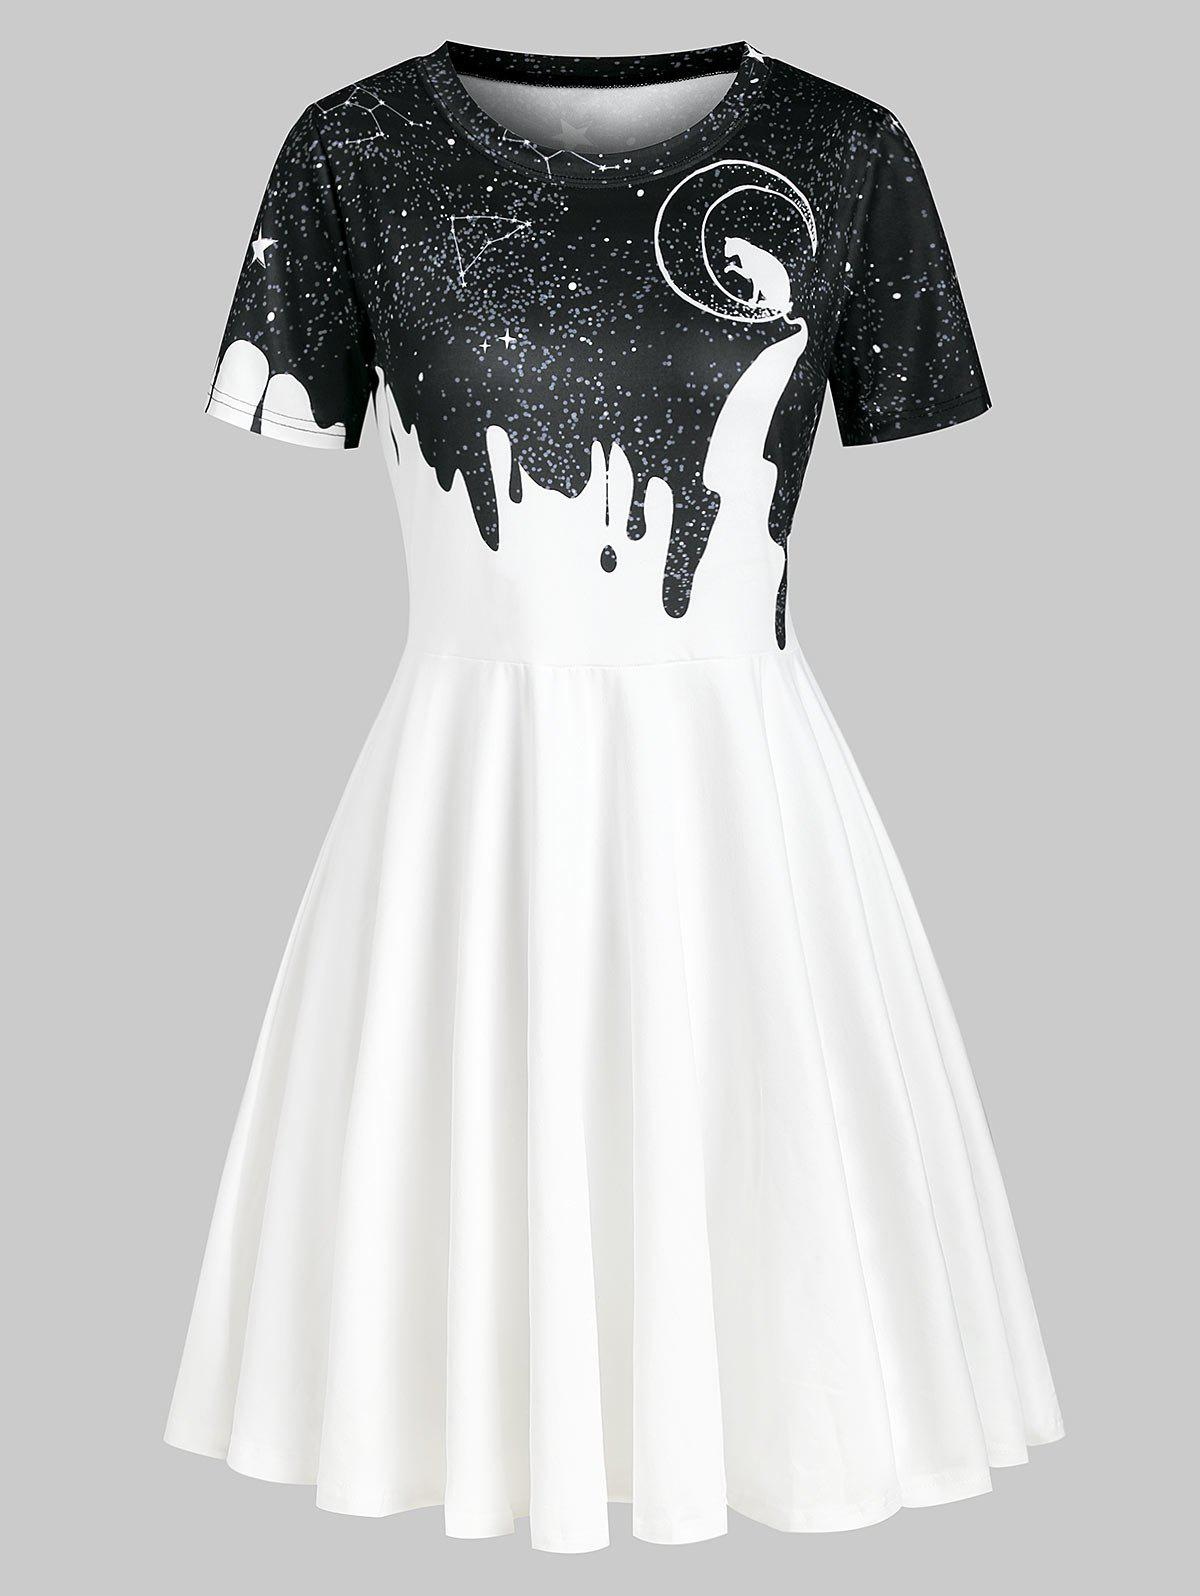 Cat Moon Galaxy Print Short Sleeve Dress - multicolor A 2XL